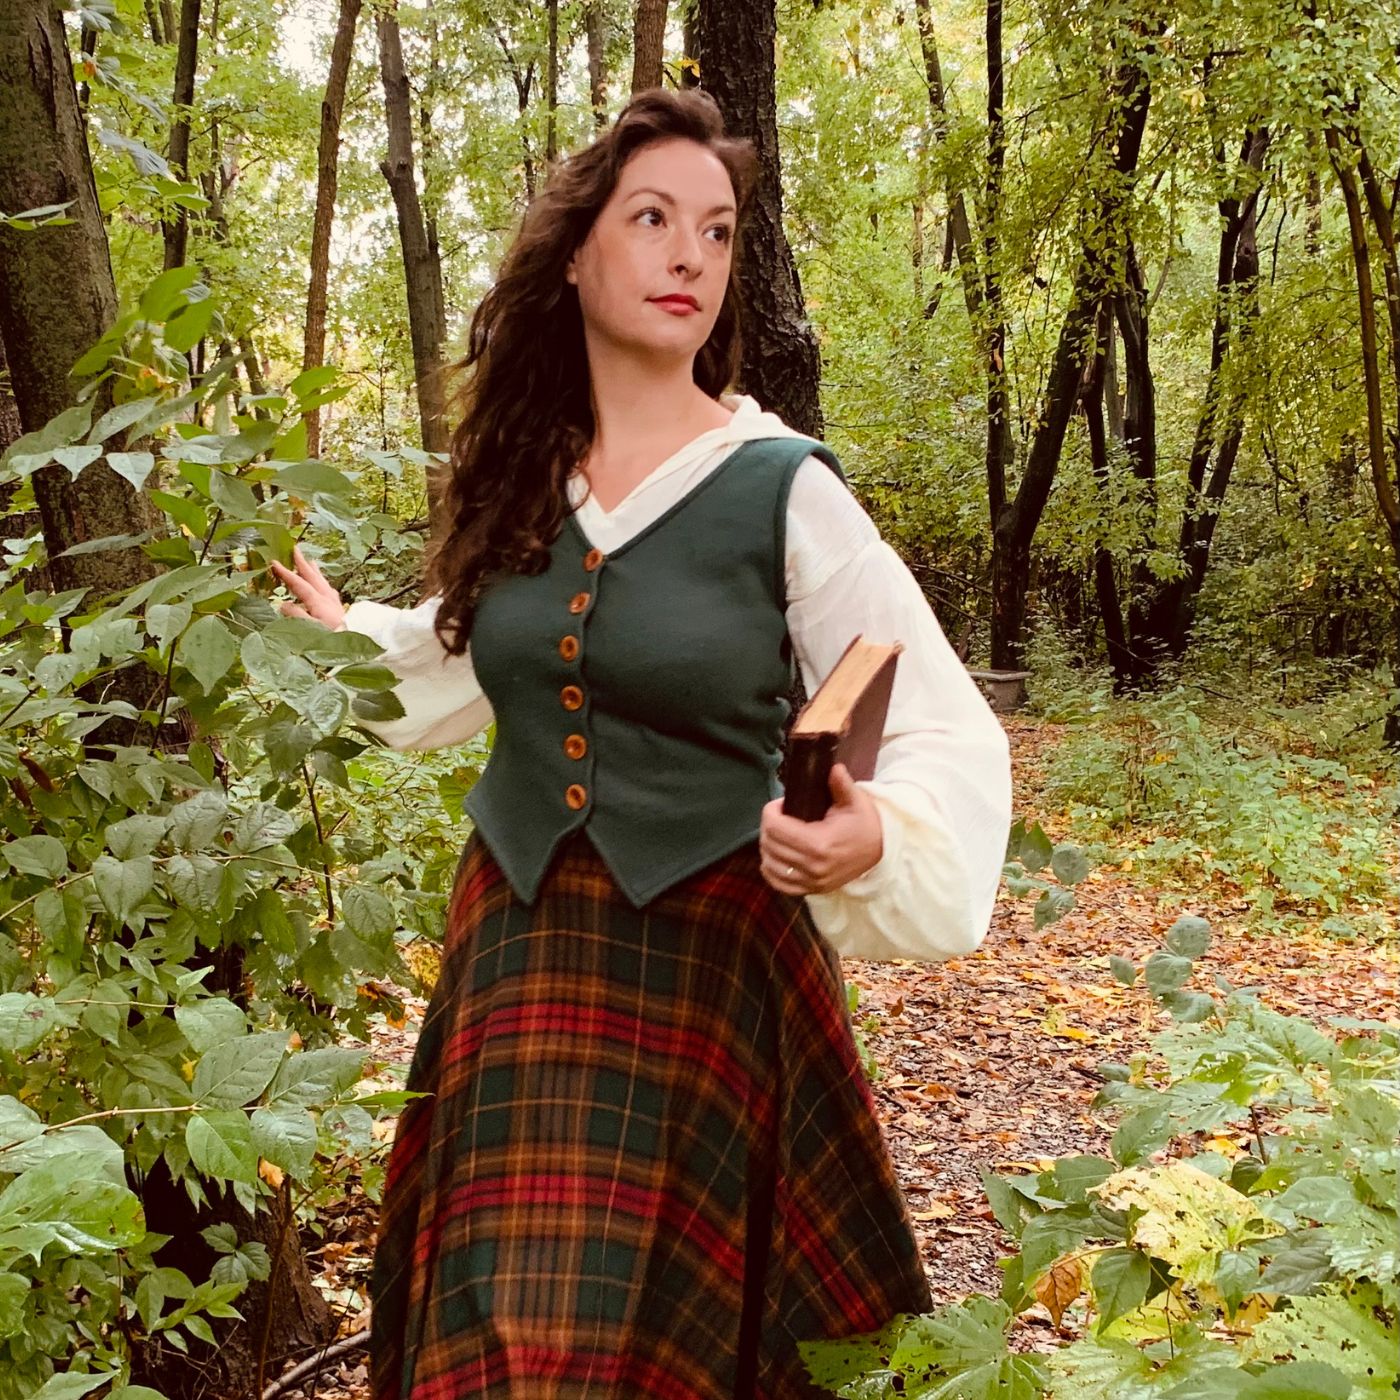 Fox is standing in the woods, wearing a long red-and-green plaid skirt, a dark green button-up vest and a cream long-sleeved shirt, holding a book in their left hand